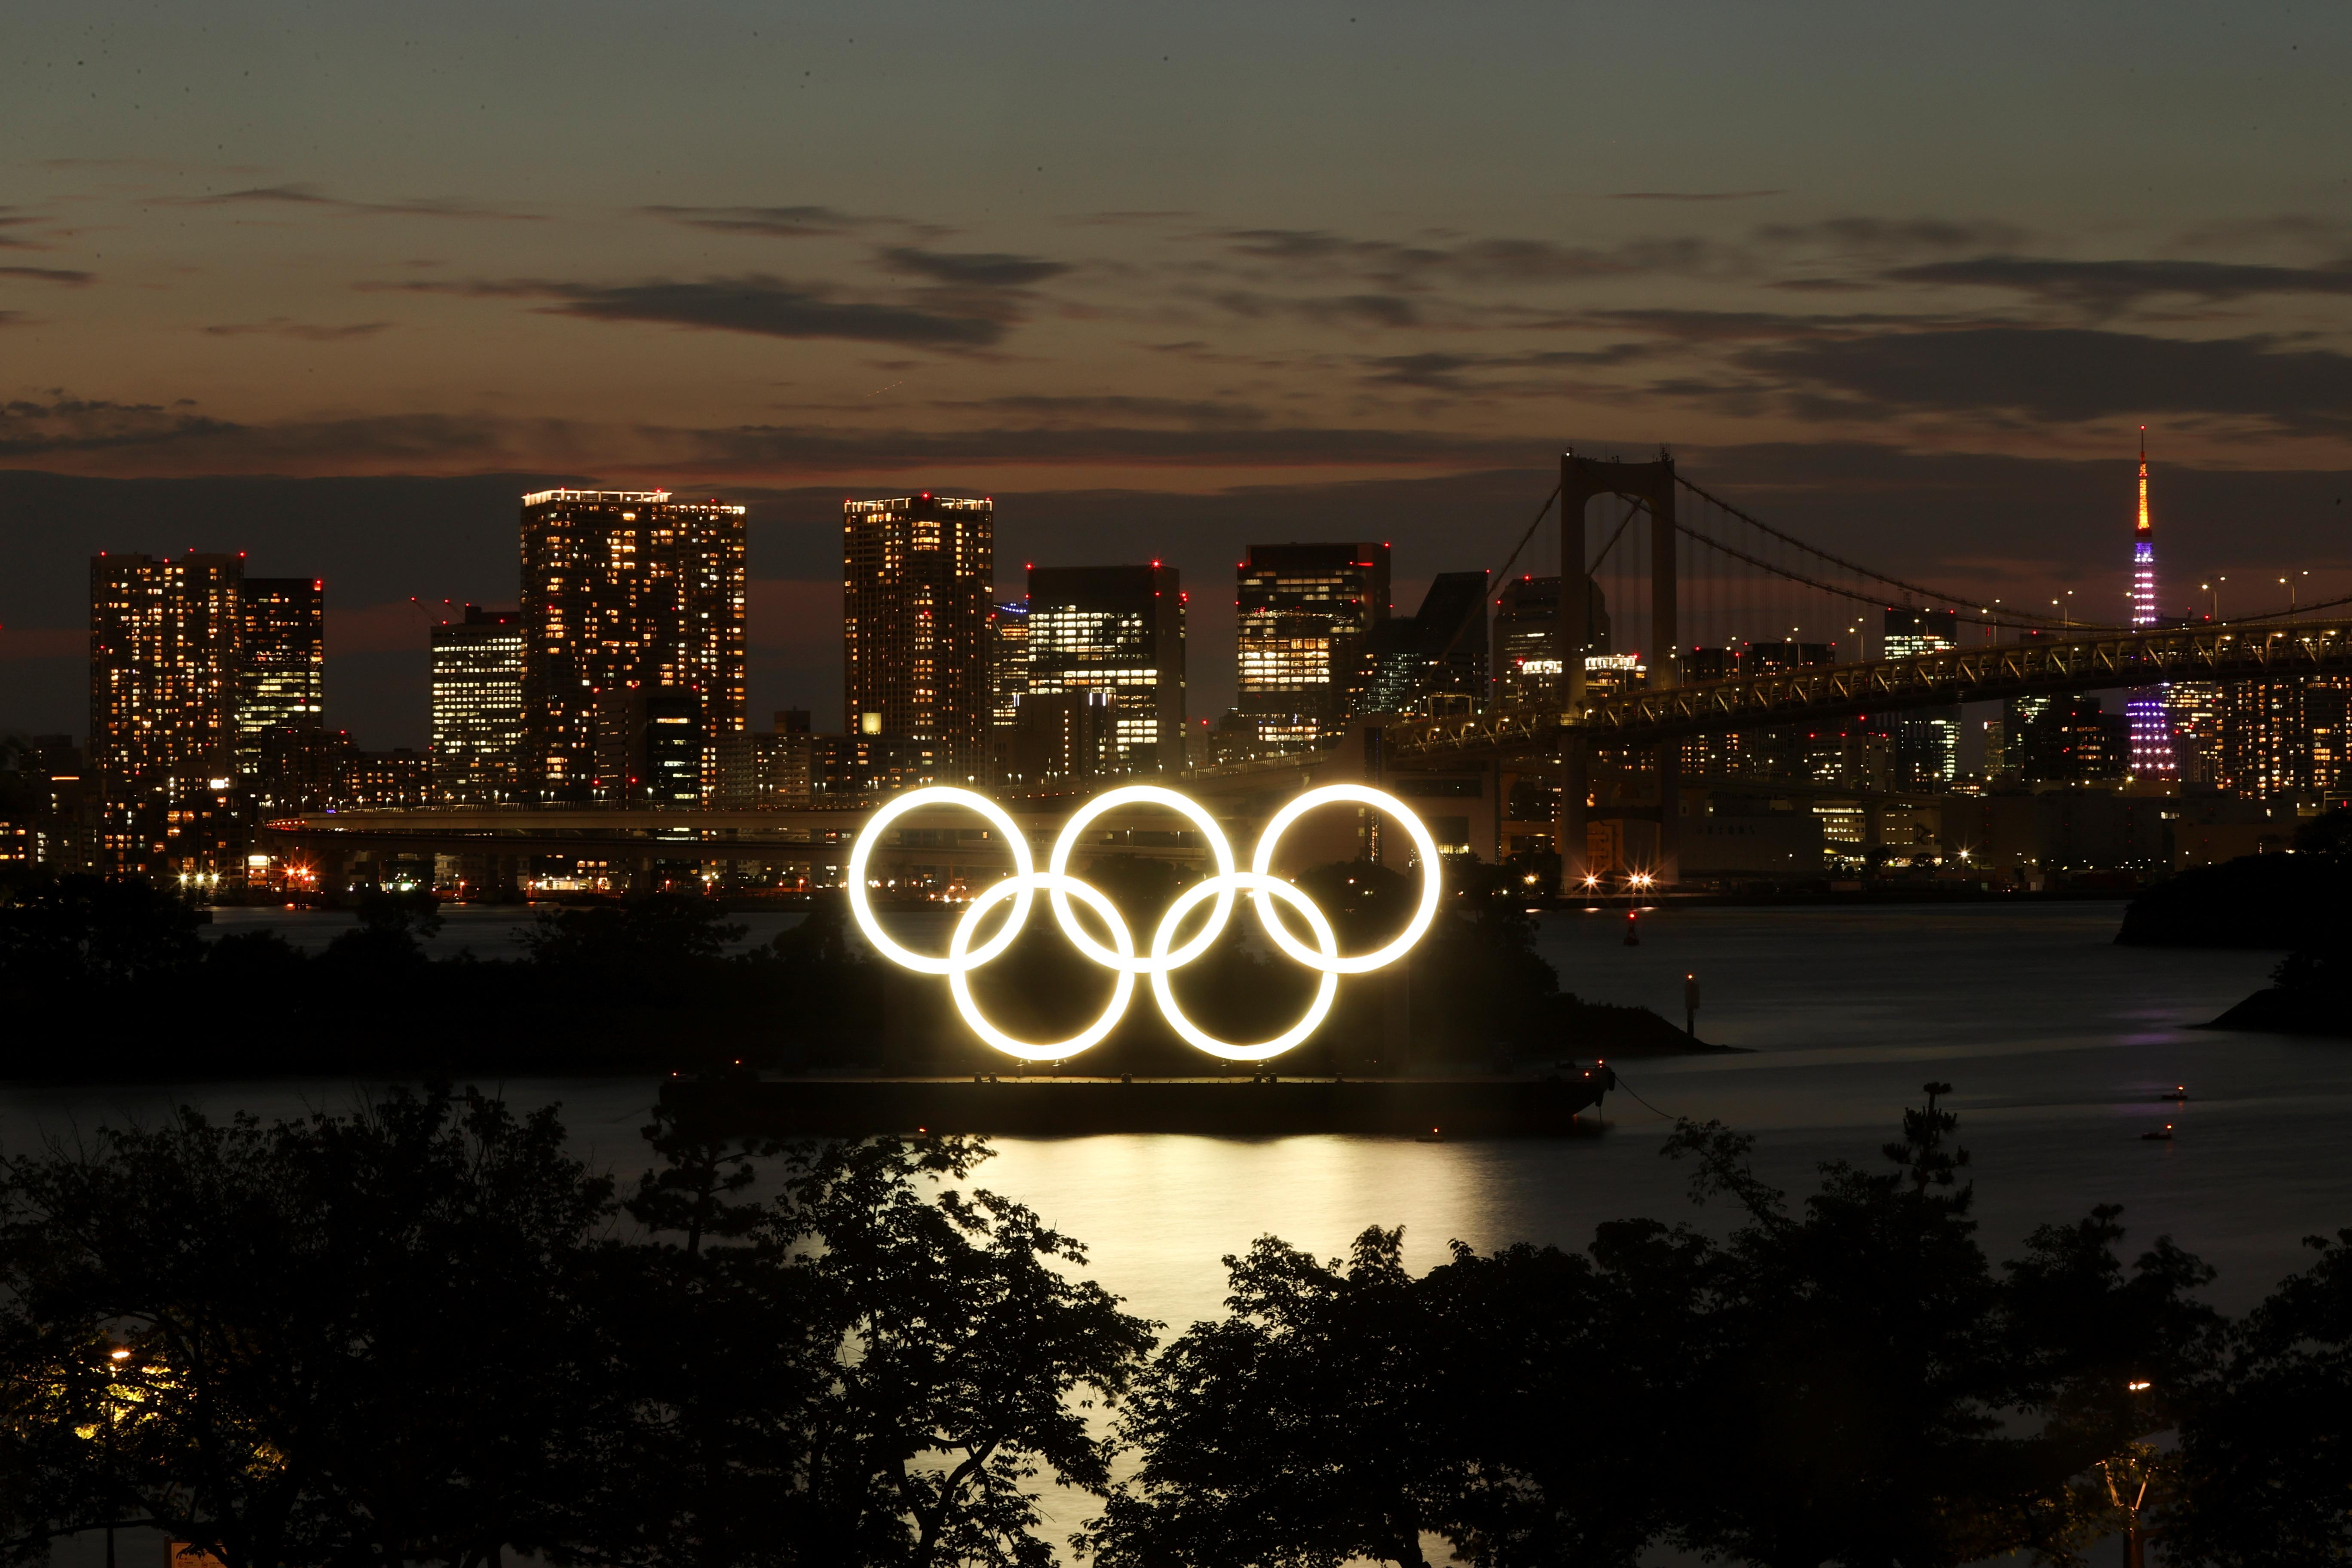 A general view of the Olympic Rings installed on a floating platform with the Rainbow Bridge in the background in preparation for the Tokyo 2020 Olympic Games in Tokyo, Japan June 21, 2021. Picture taken with long exposure.  REUTERS/Pawel Kopczynski